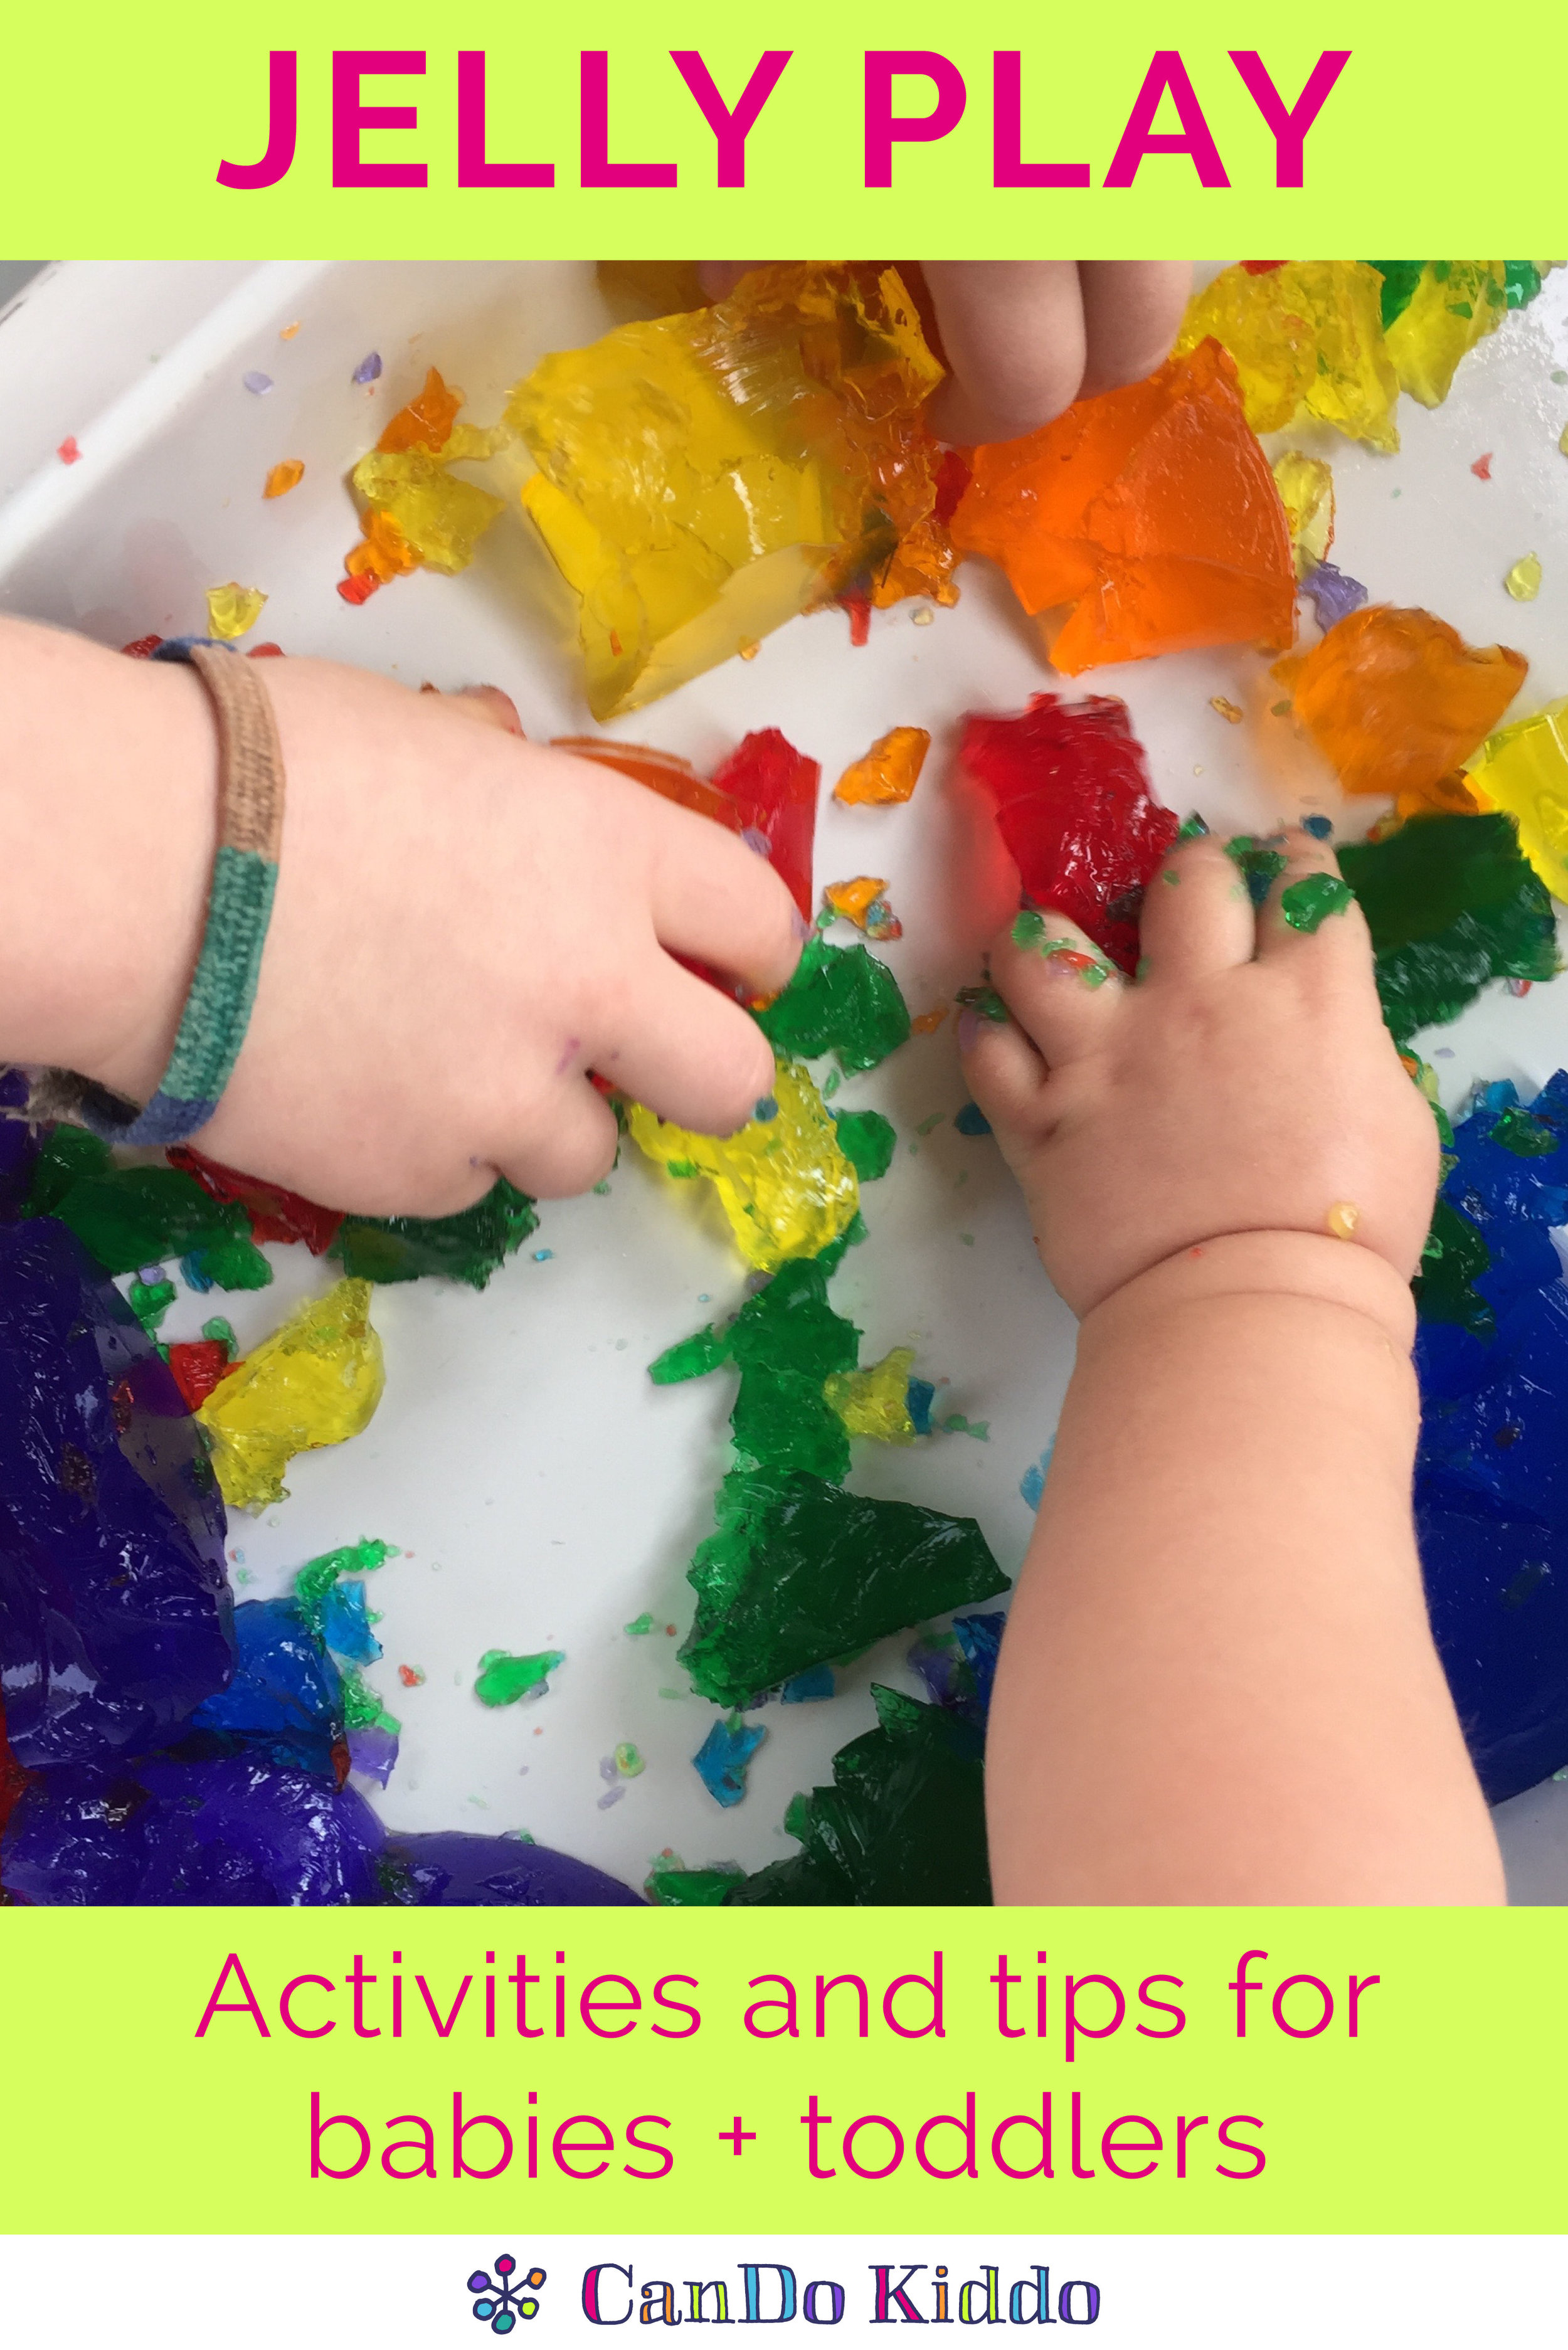 Jello gelatin jelly play for babies and toddlers.